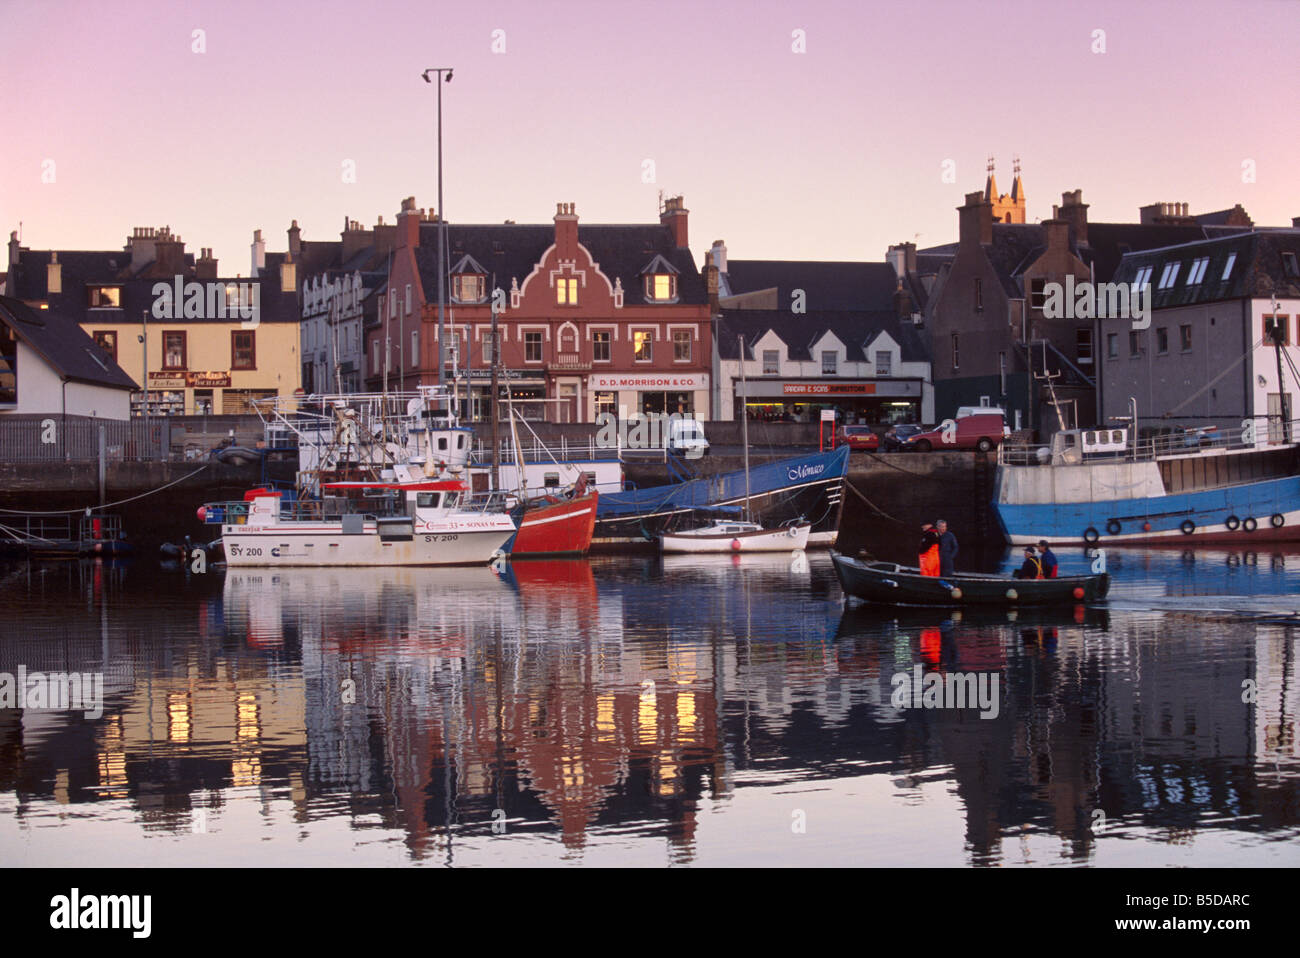 Stornoway (Steornabhagh) harbour at dusk, Isle of Lewis, Outer Hebrides, Scotland, Europe - Stock Image